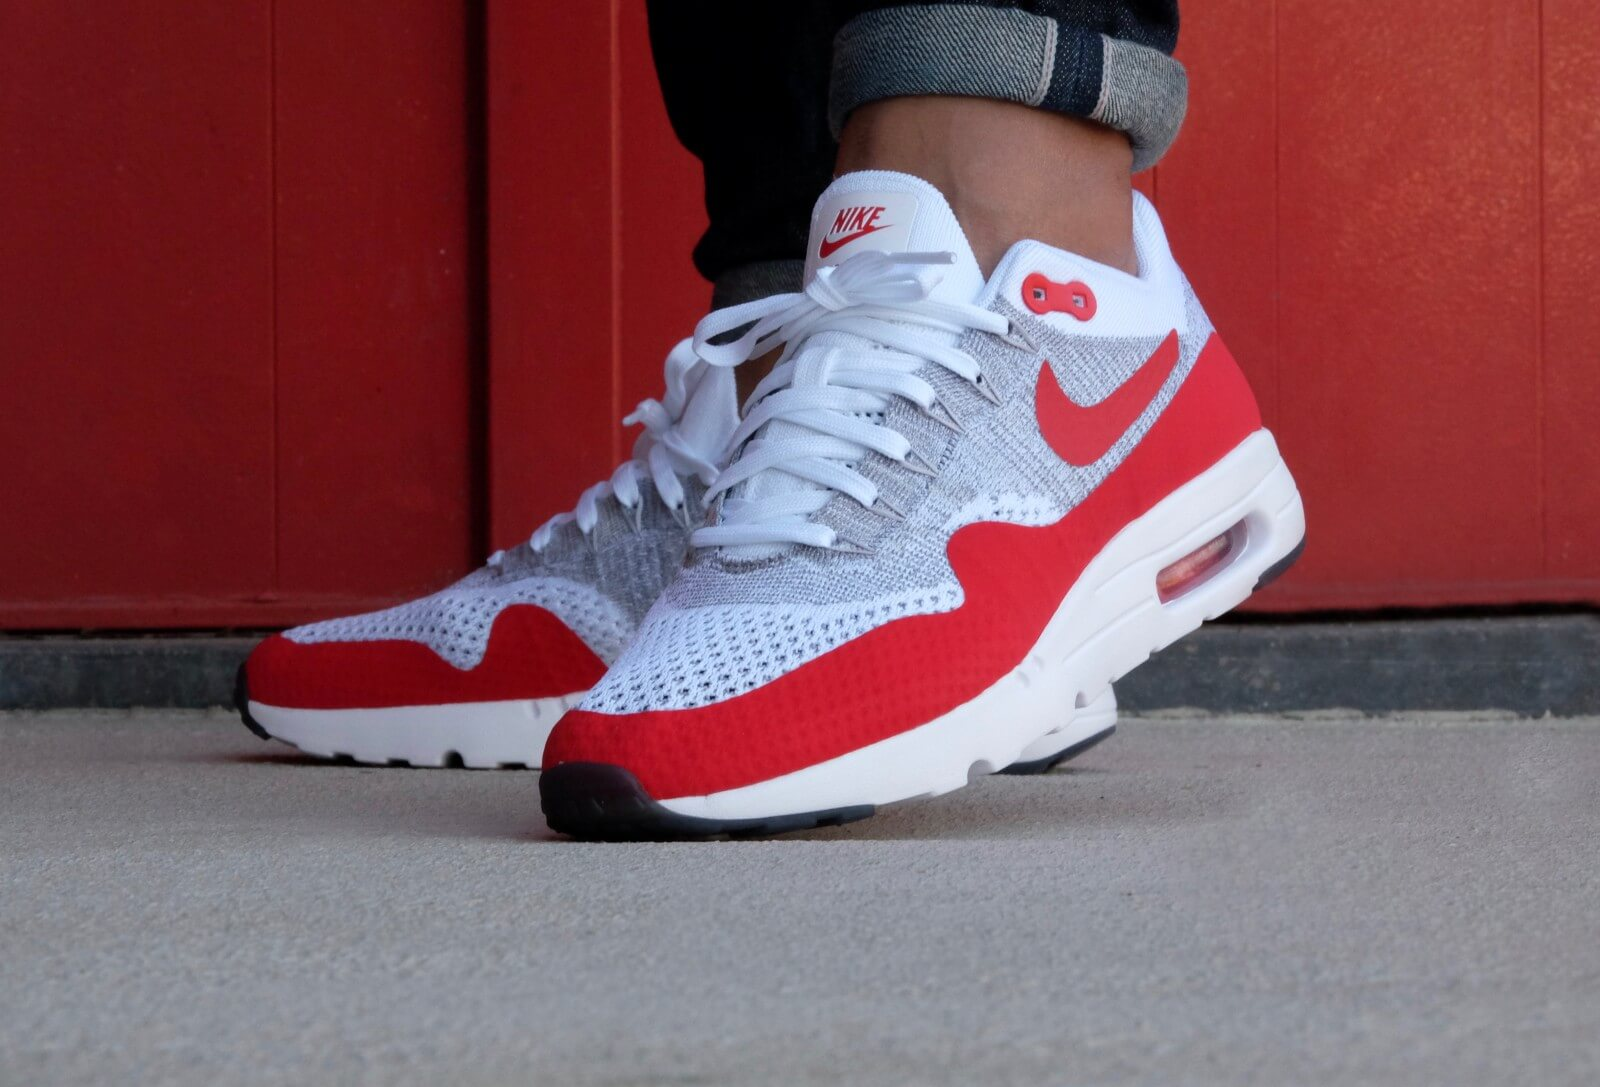 55098d43199 ... cheap nike air max 1 ultra flyknit white pure platinum cool grey  university red 867ea 0ff90